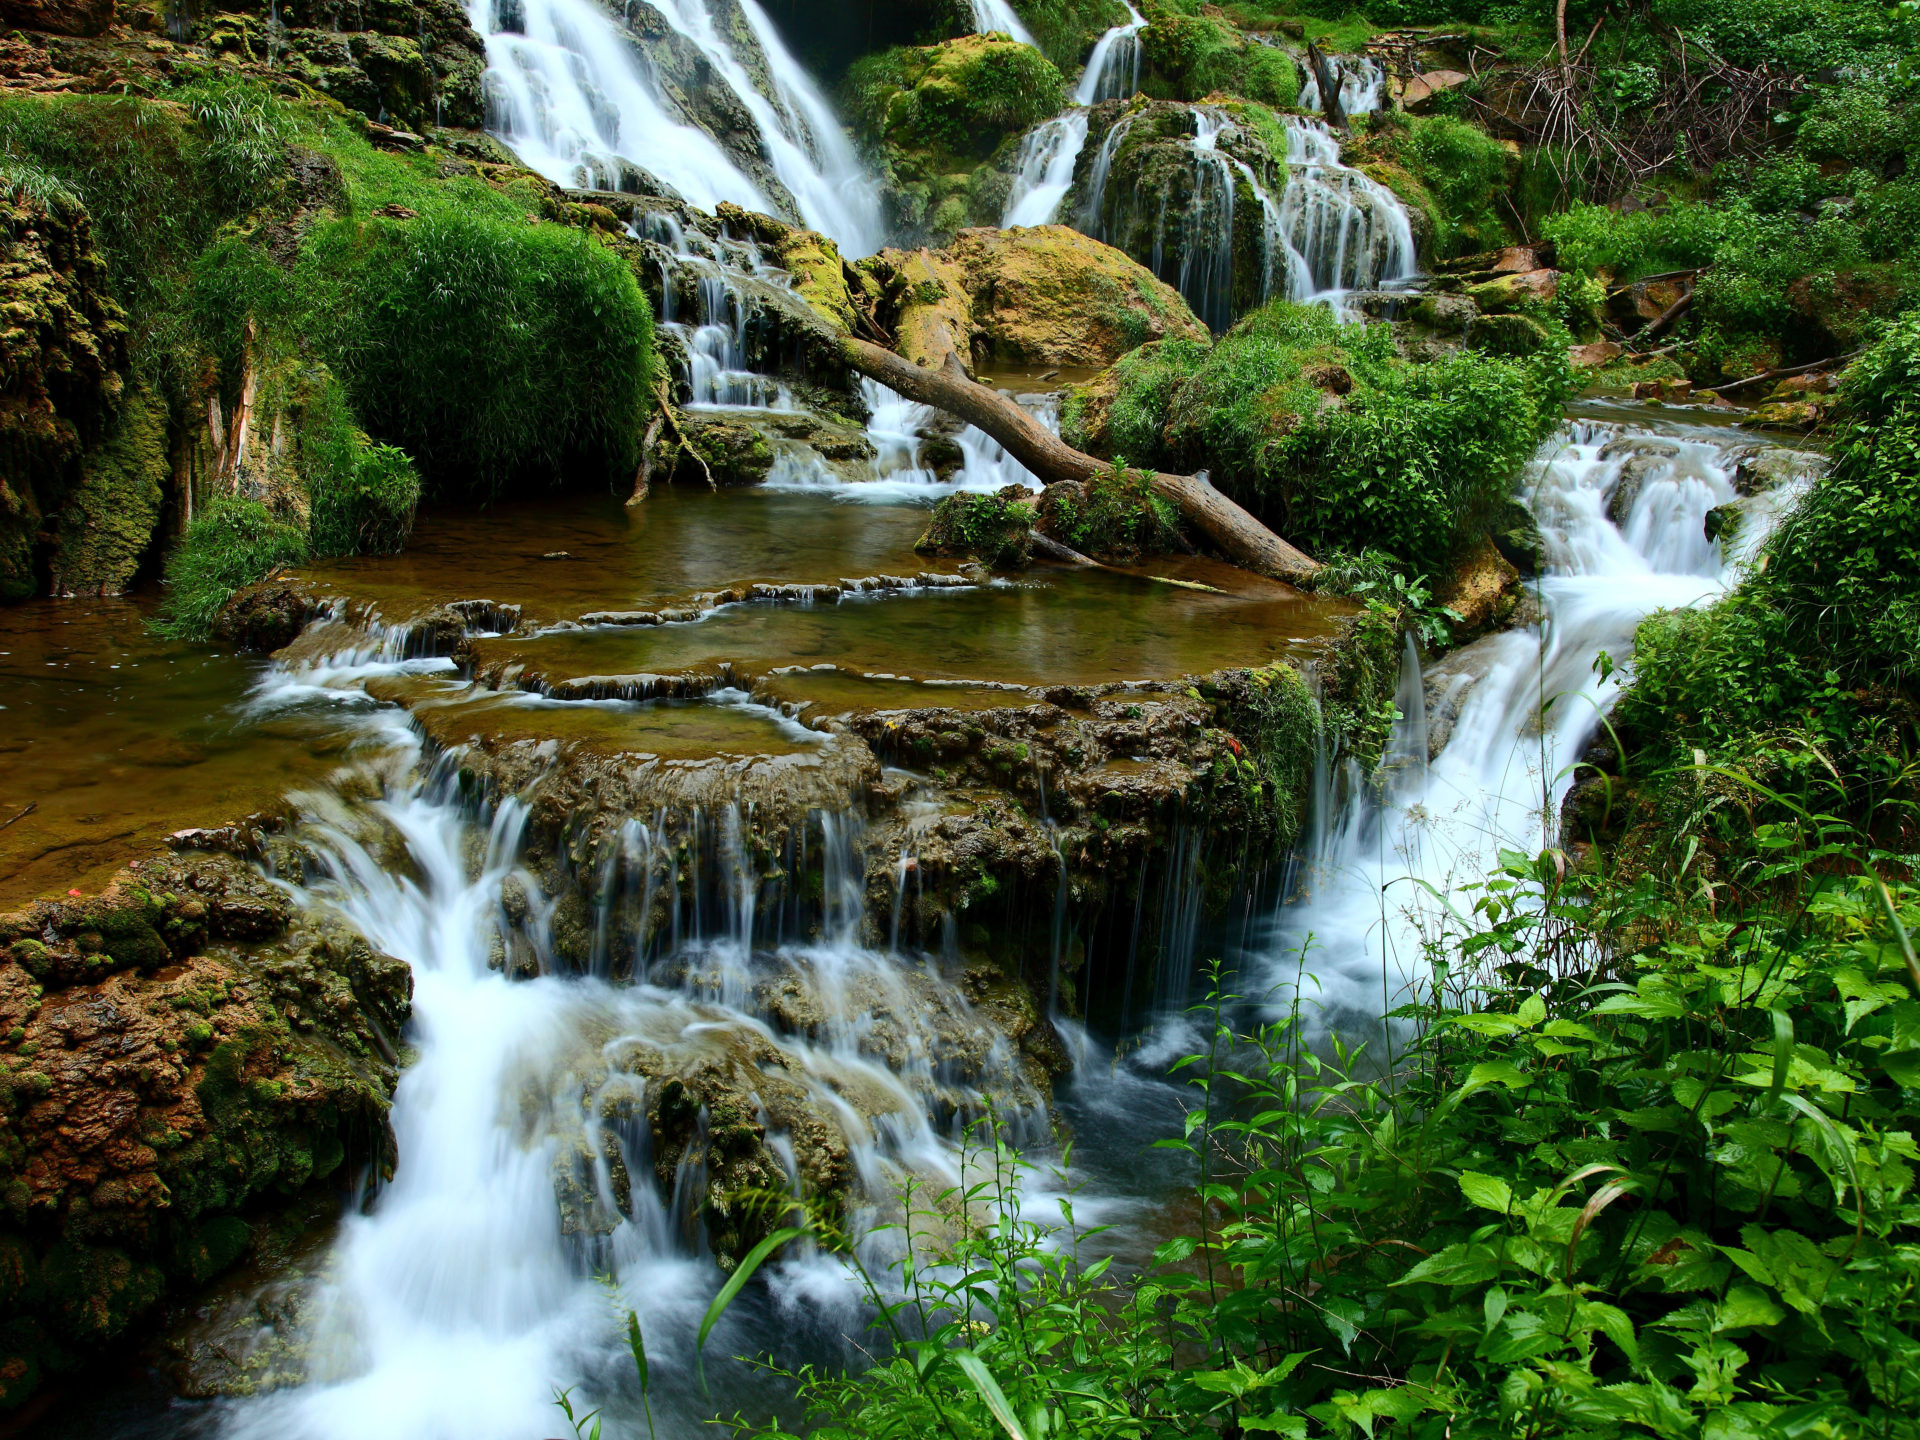 Falls Hd Wallpaper Free Download Cascading Waterfalls Blue Ridge Mountains In Virginia